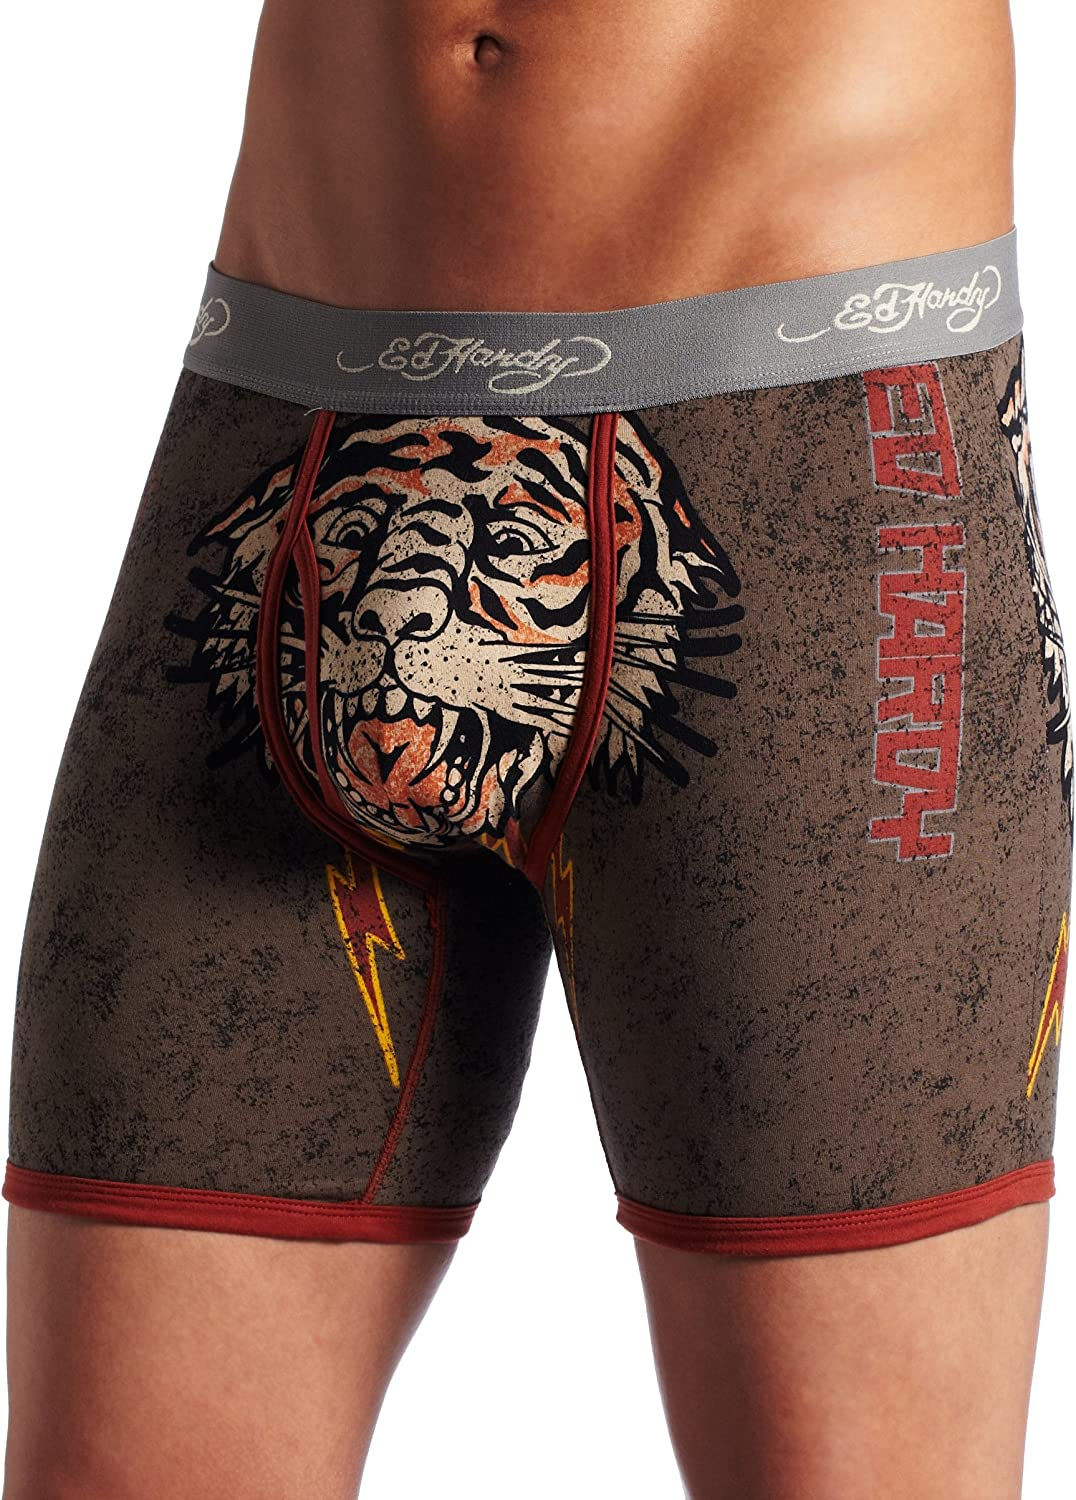 Ed Hardy Men's Premium tigered for Life Boxer Brief